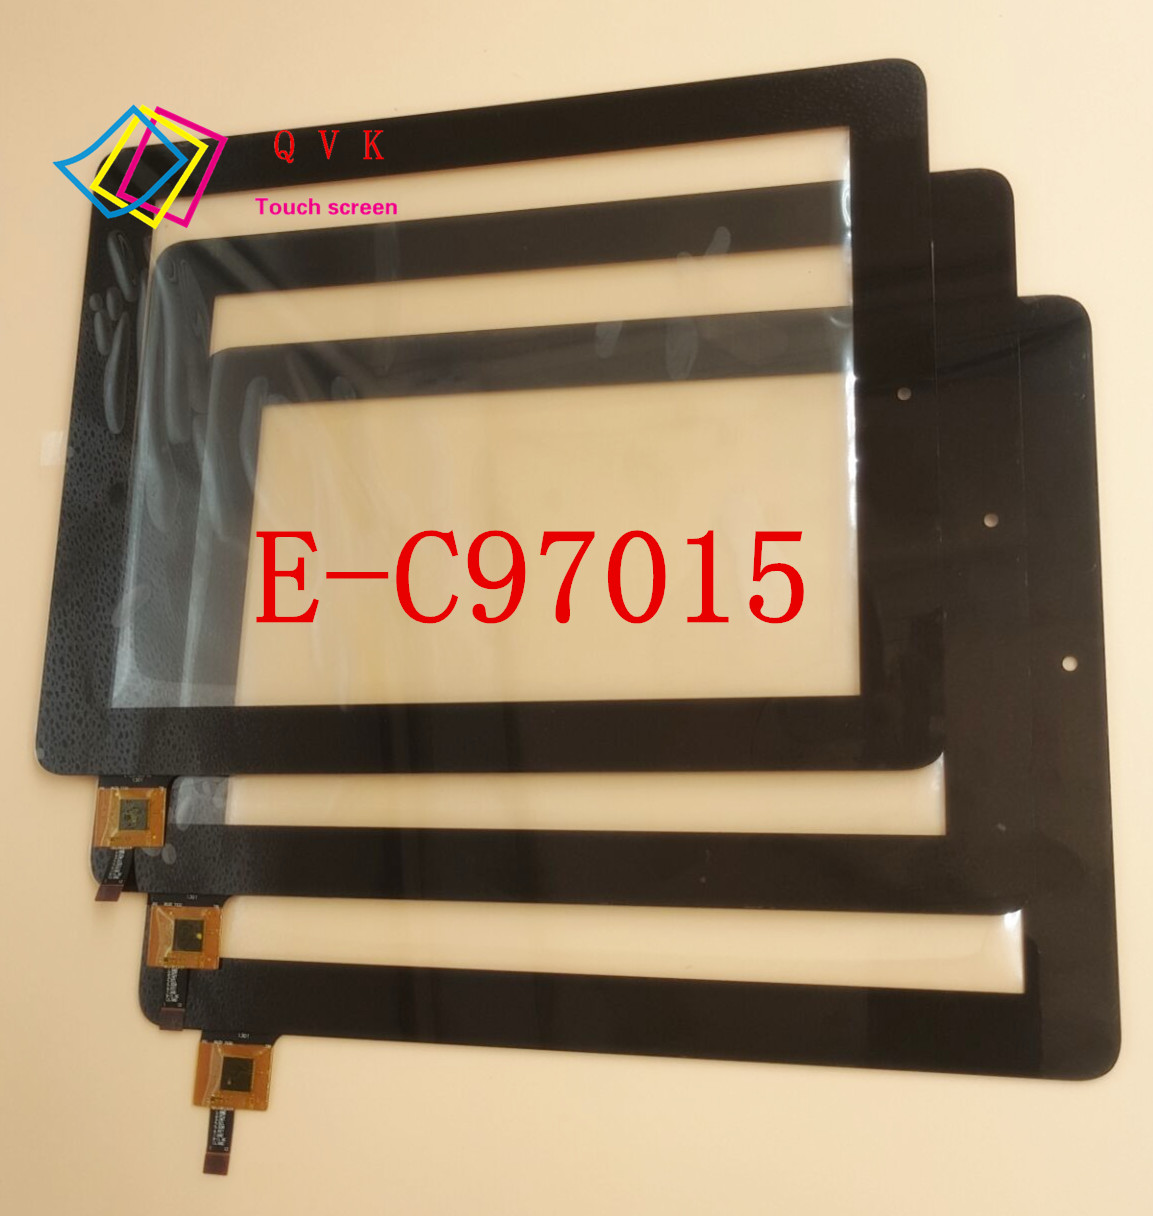 9.7 Inch Touch Screen QSD E-C97015-01 For Digma IDsQ10 IDsQ 10 3G IDrQ10 Tablet PC Digitizer Replacement